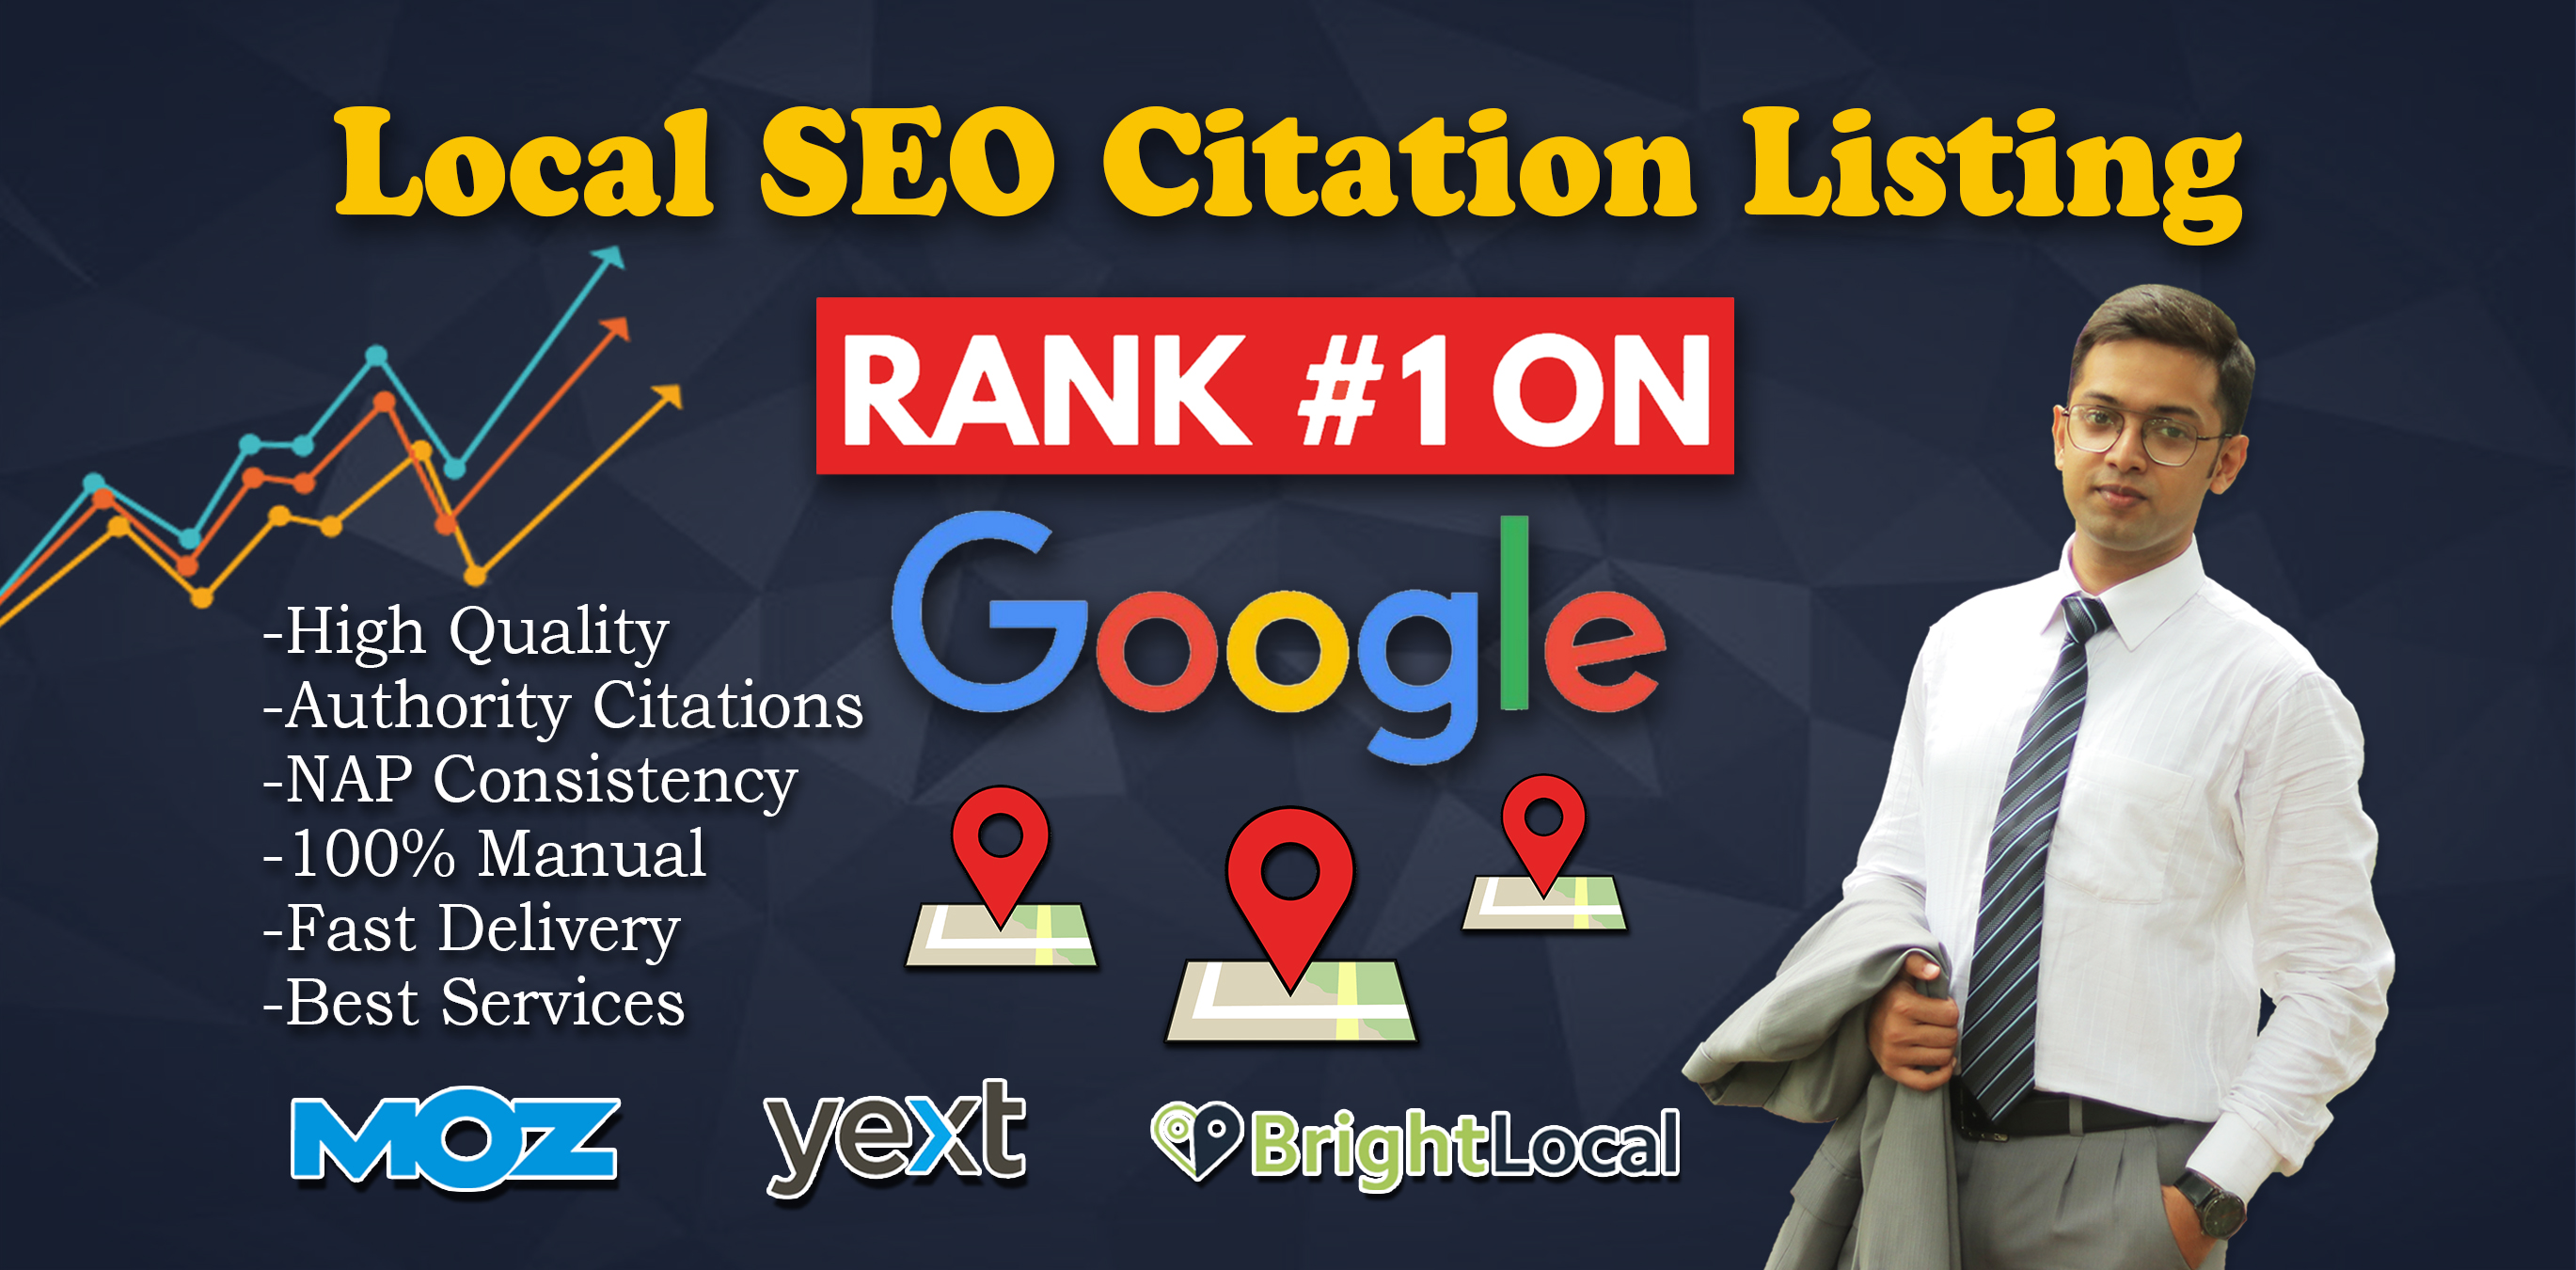 I will do 5 Local SEO citation listing with MOZ and YEXT for Google Rank